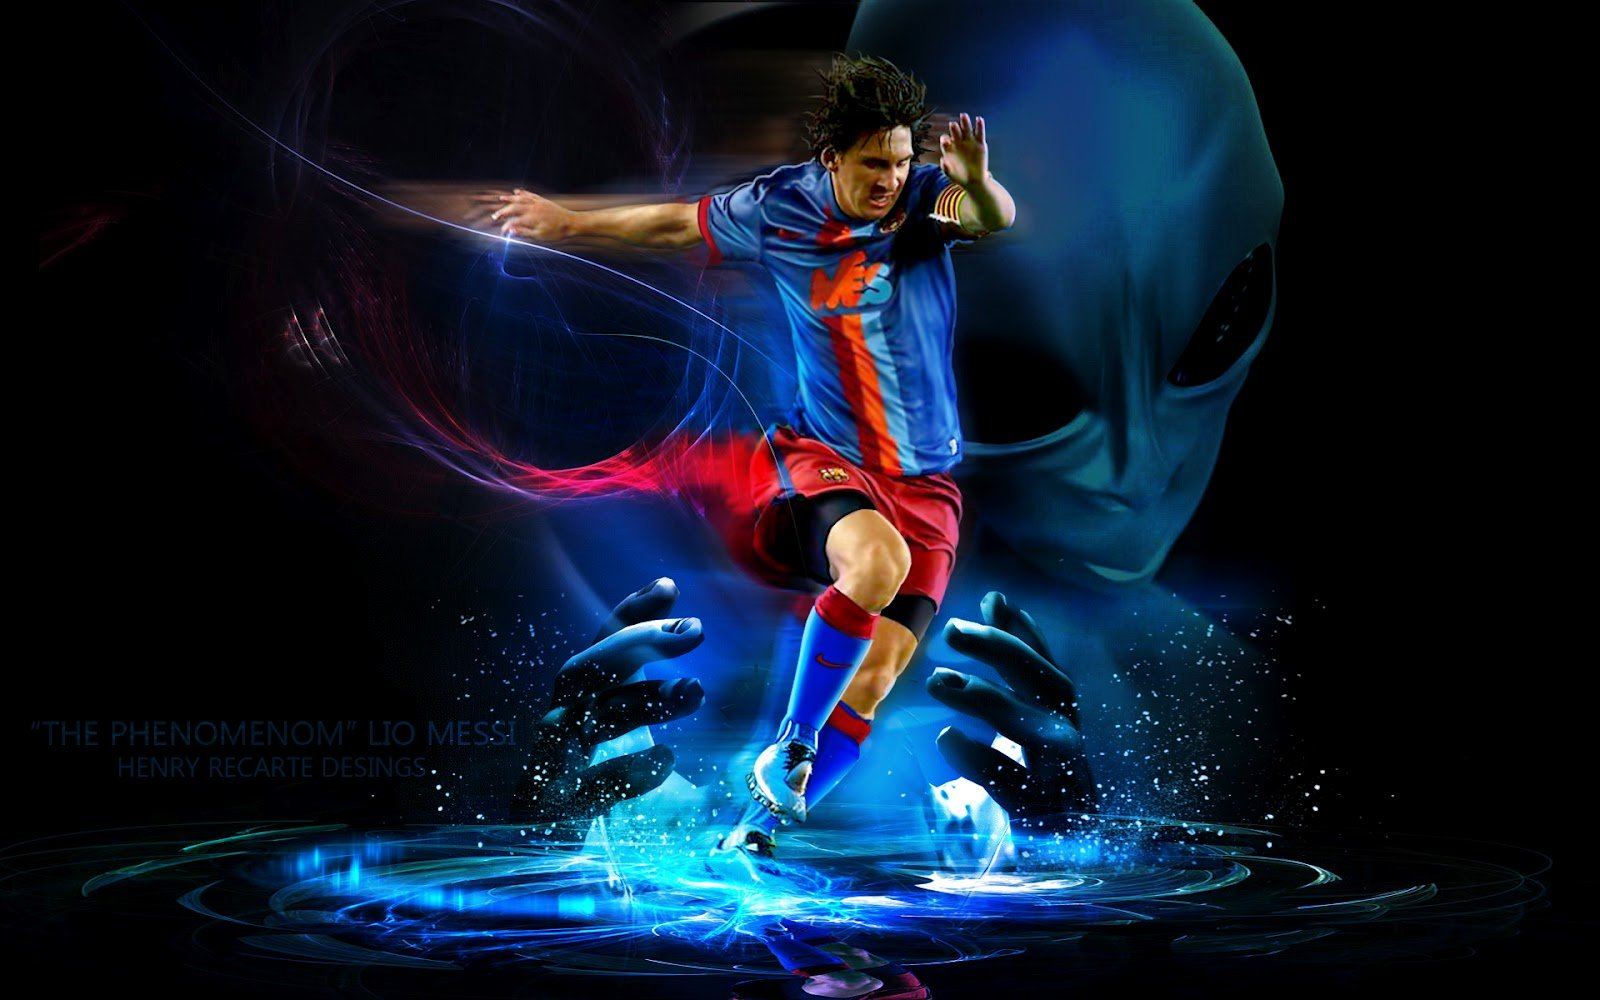 Lionel Messi Hd Wallpapers HD Wallpaper High Definition 1600x1000